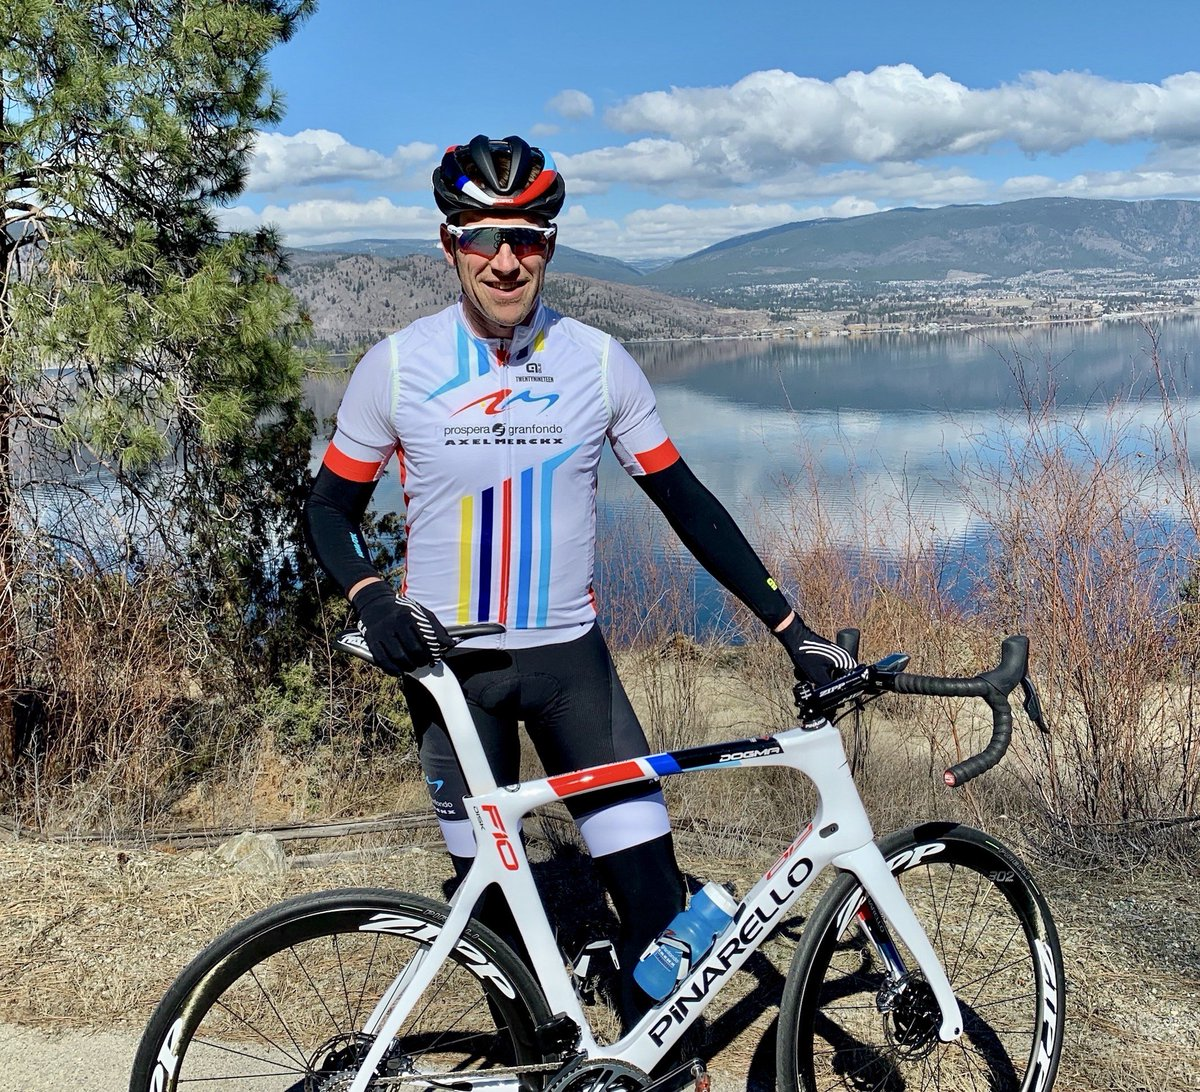 test Twitter Media - The NEW 2019 @axelsgranfondo kits, by @ALE_cycling, have arrived! These sweet threads will be available at the #Granfondo Cycling Expo on July 12th/13th. Classe Speciale riders receive a kit! @axelmerckx, the model, is not included with the purchase. https://t.co/UddWoEc4Z0 https://t.co/kWk2n9RJs4